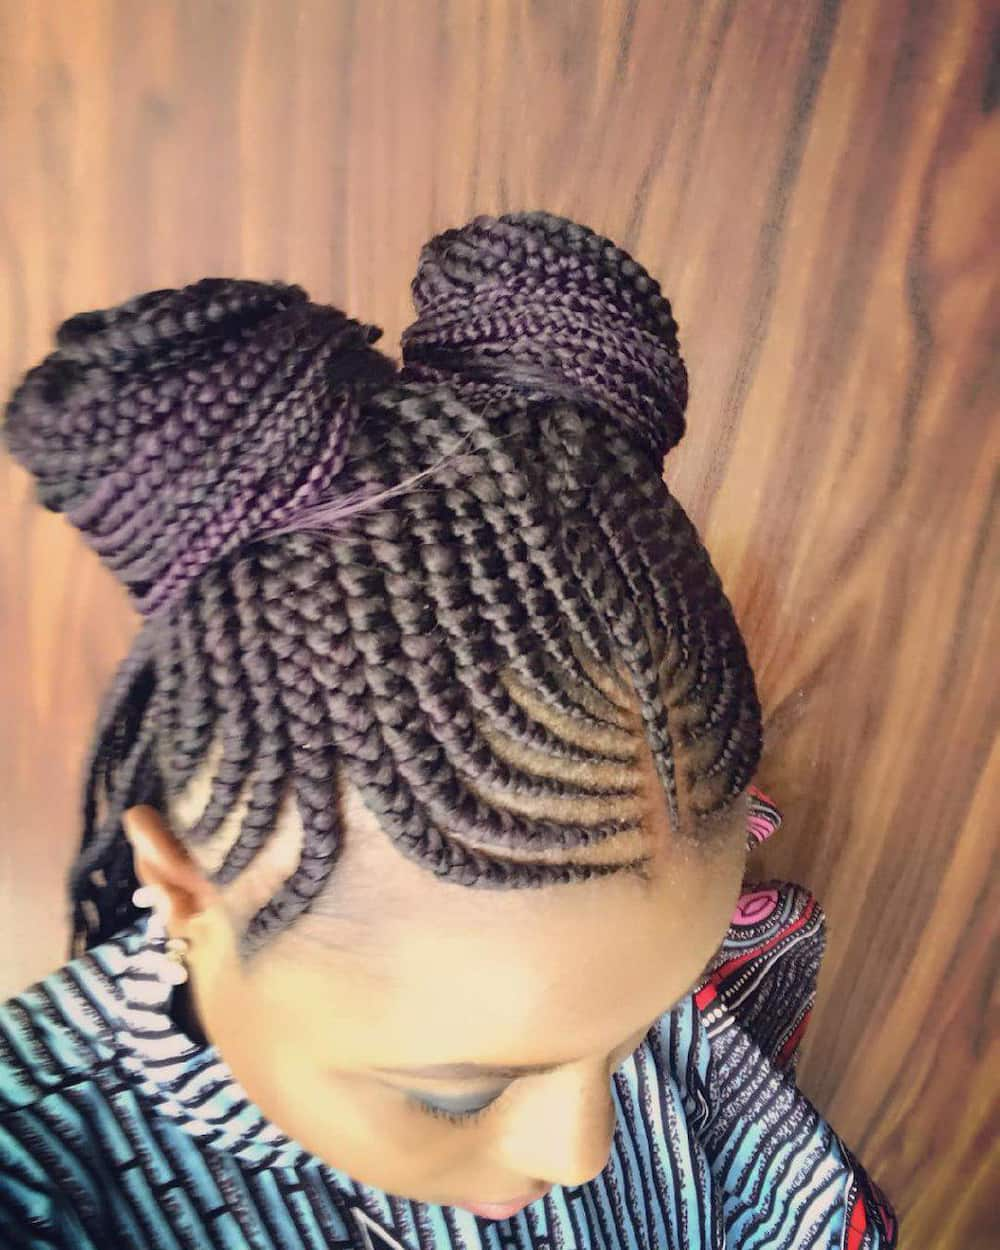 Top 20 Ghana weaving Shuku hairstyles to try in 2019 Legit.ng